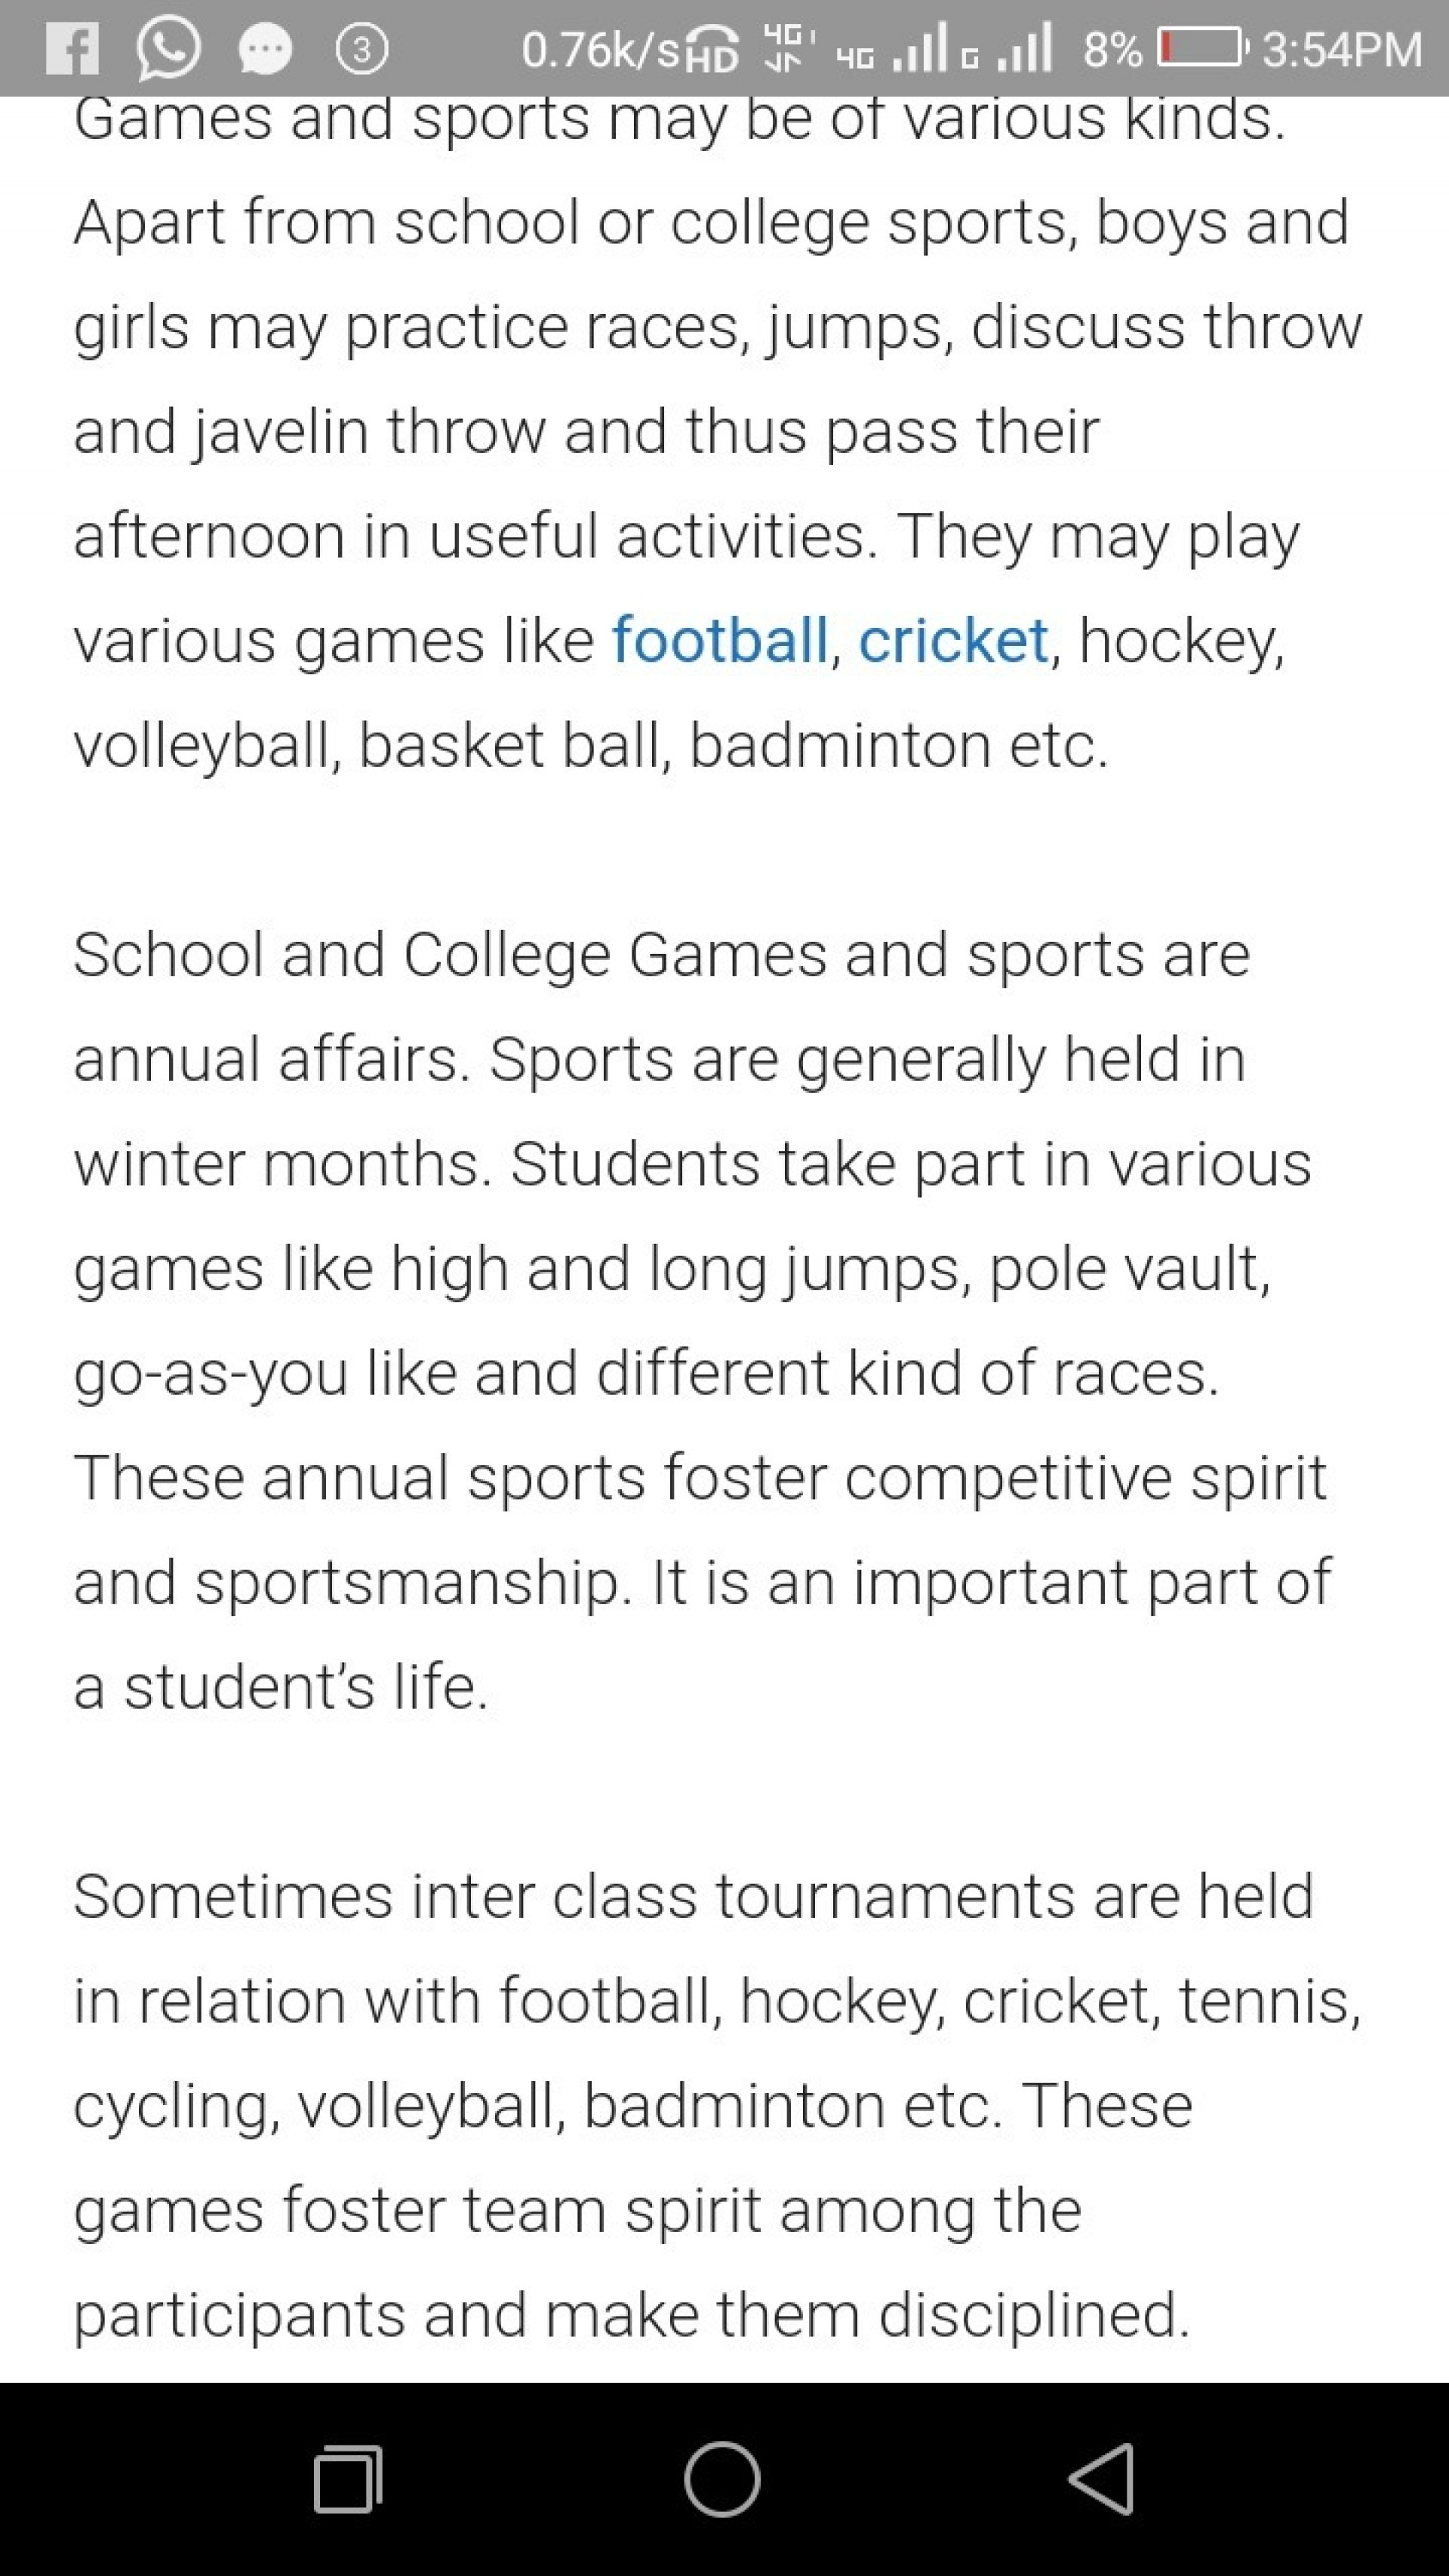 018 Essay On Importance Of Games And Sports In Words Hindi School Spirit Remarkable Argumentative Examples Related Topics 1920